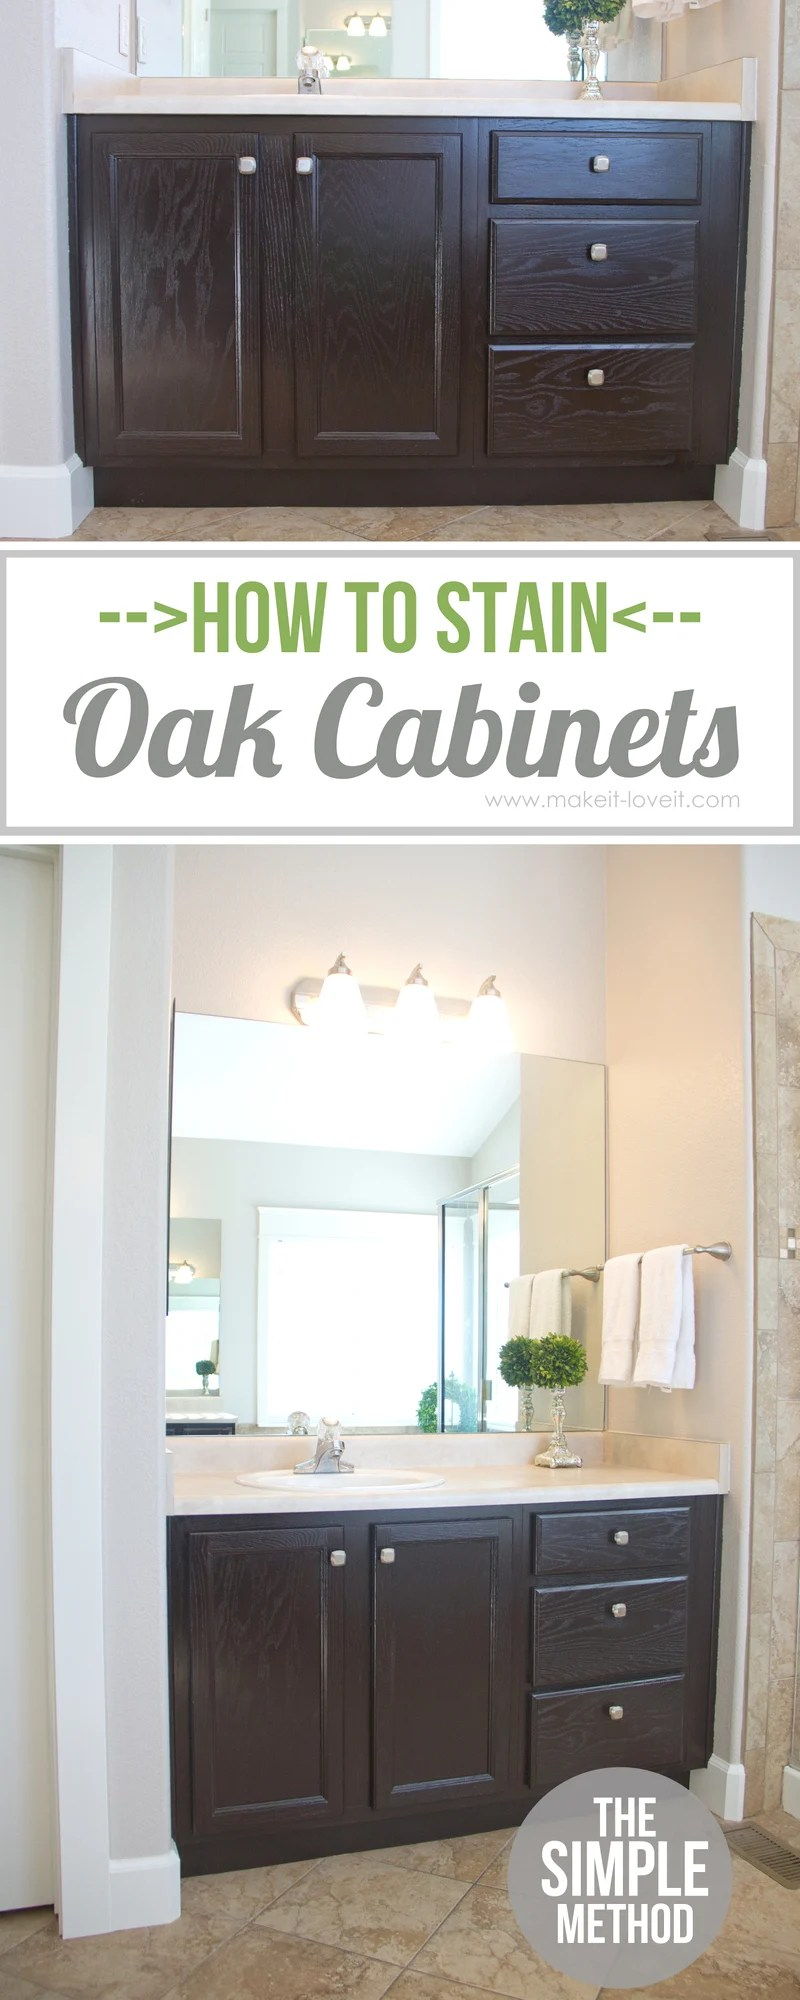 how to stain oak cabinets the simple method without sanding staining kitchen cabinets How to Stain OAK Cabinets the simple method no sanding necessary